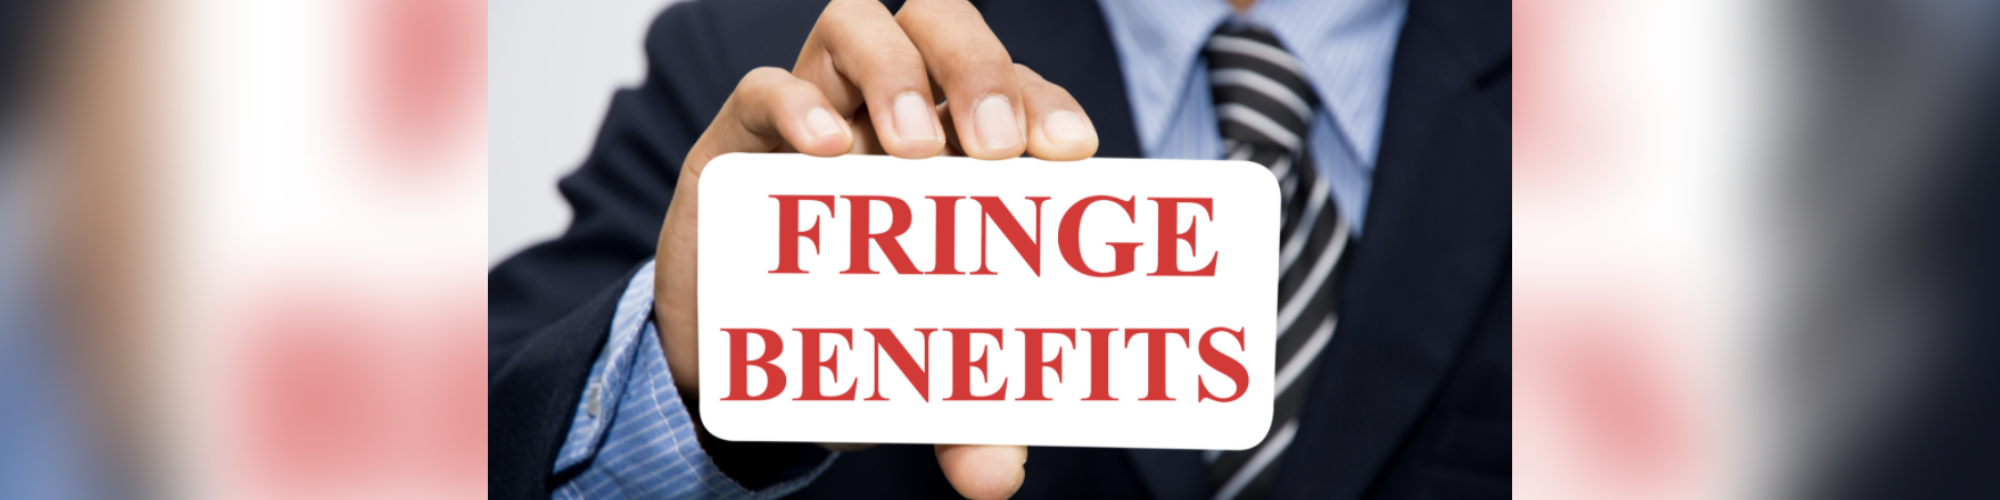 Does Fringe Benefits Tax impact your business?